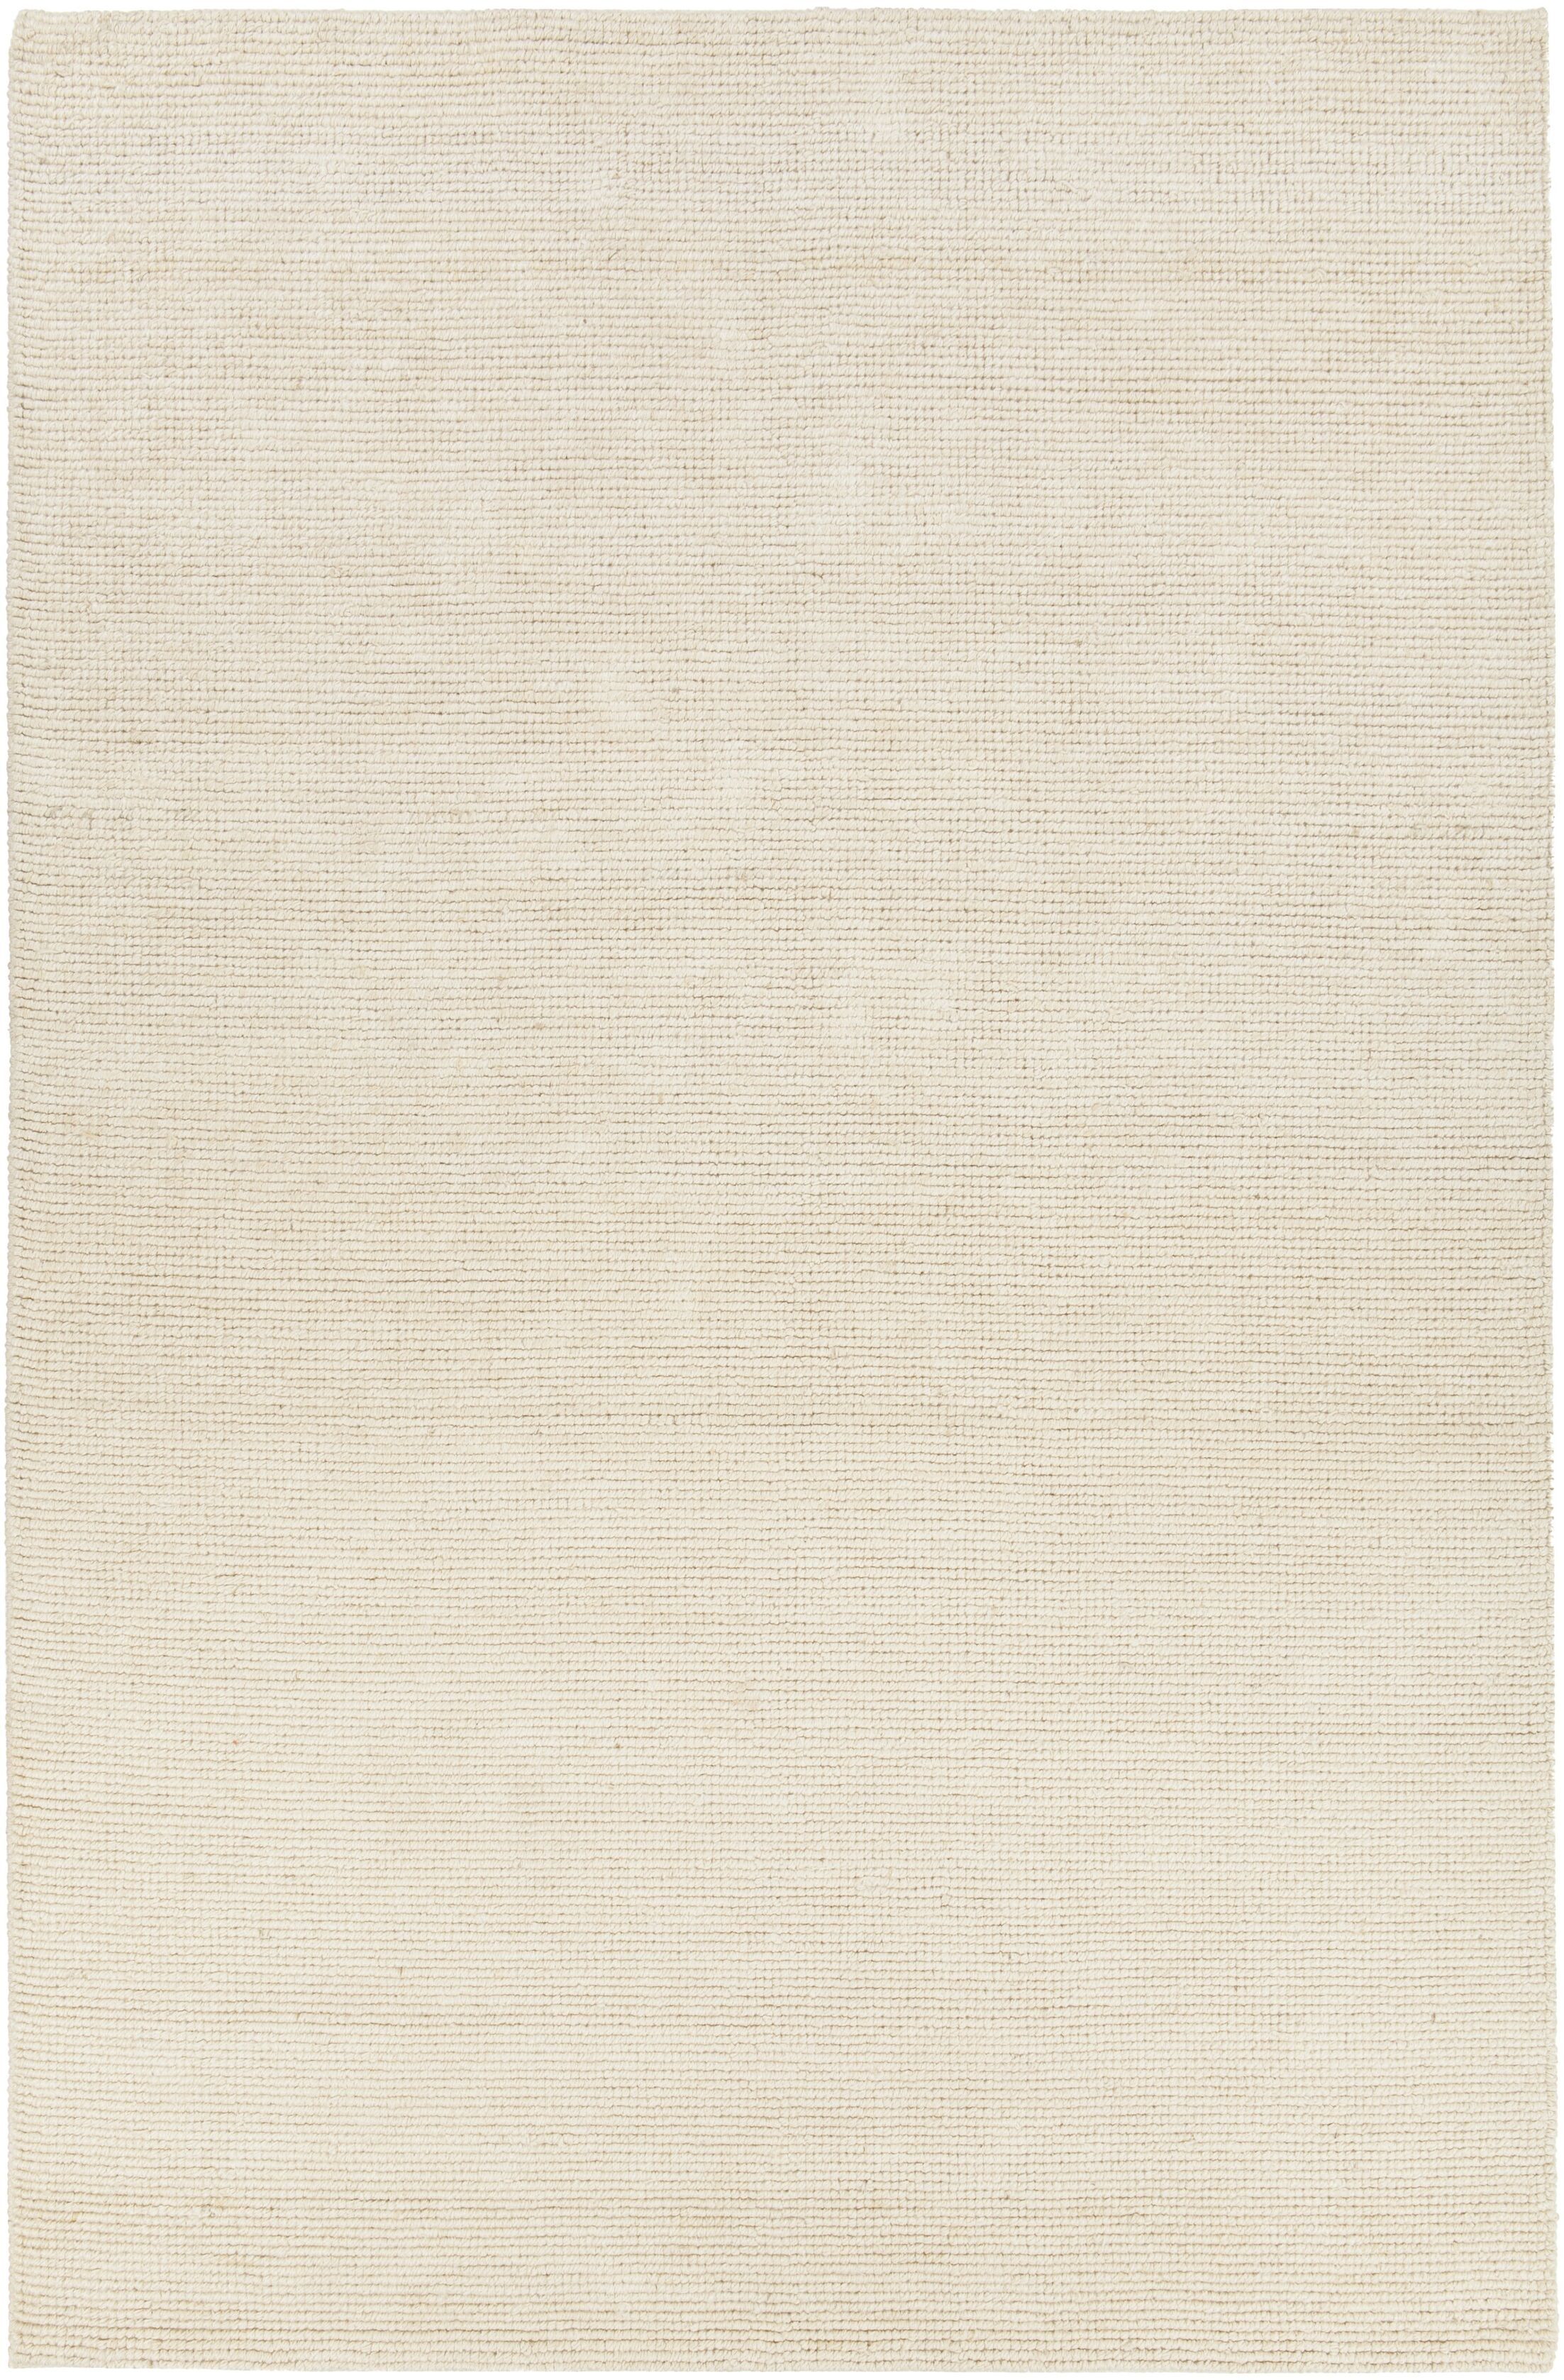 Tenth Avenue Hand-Woven White Area Rug Rug Size: 7'9